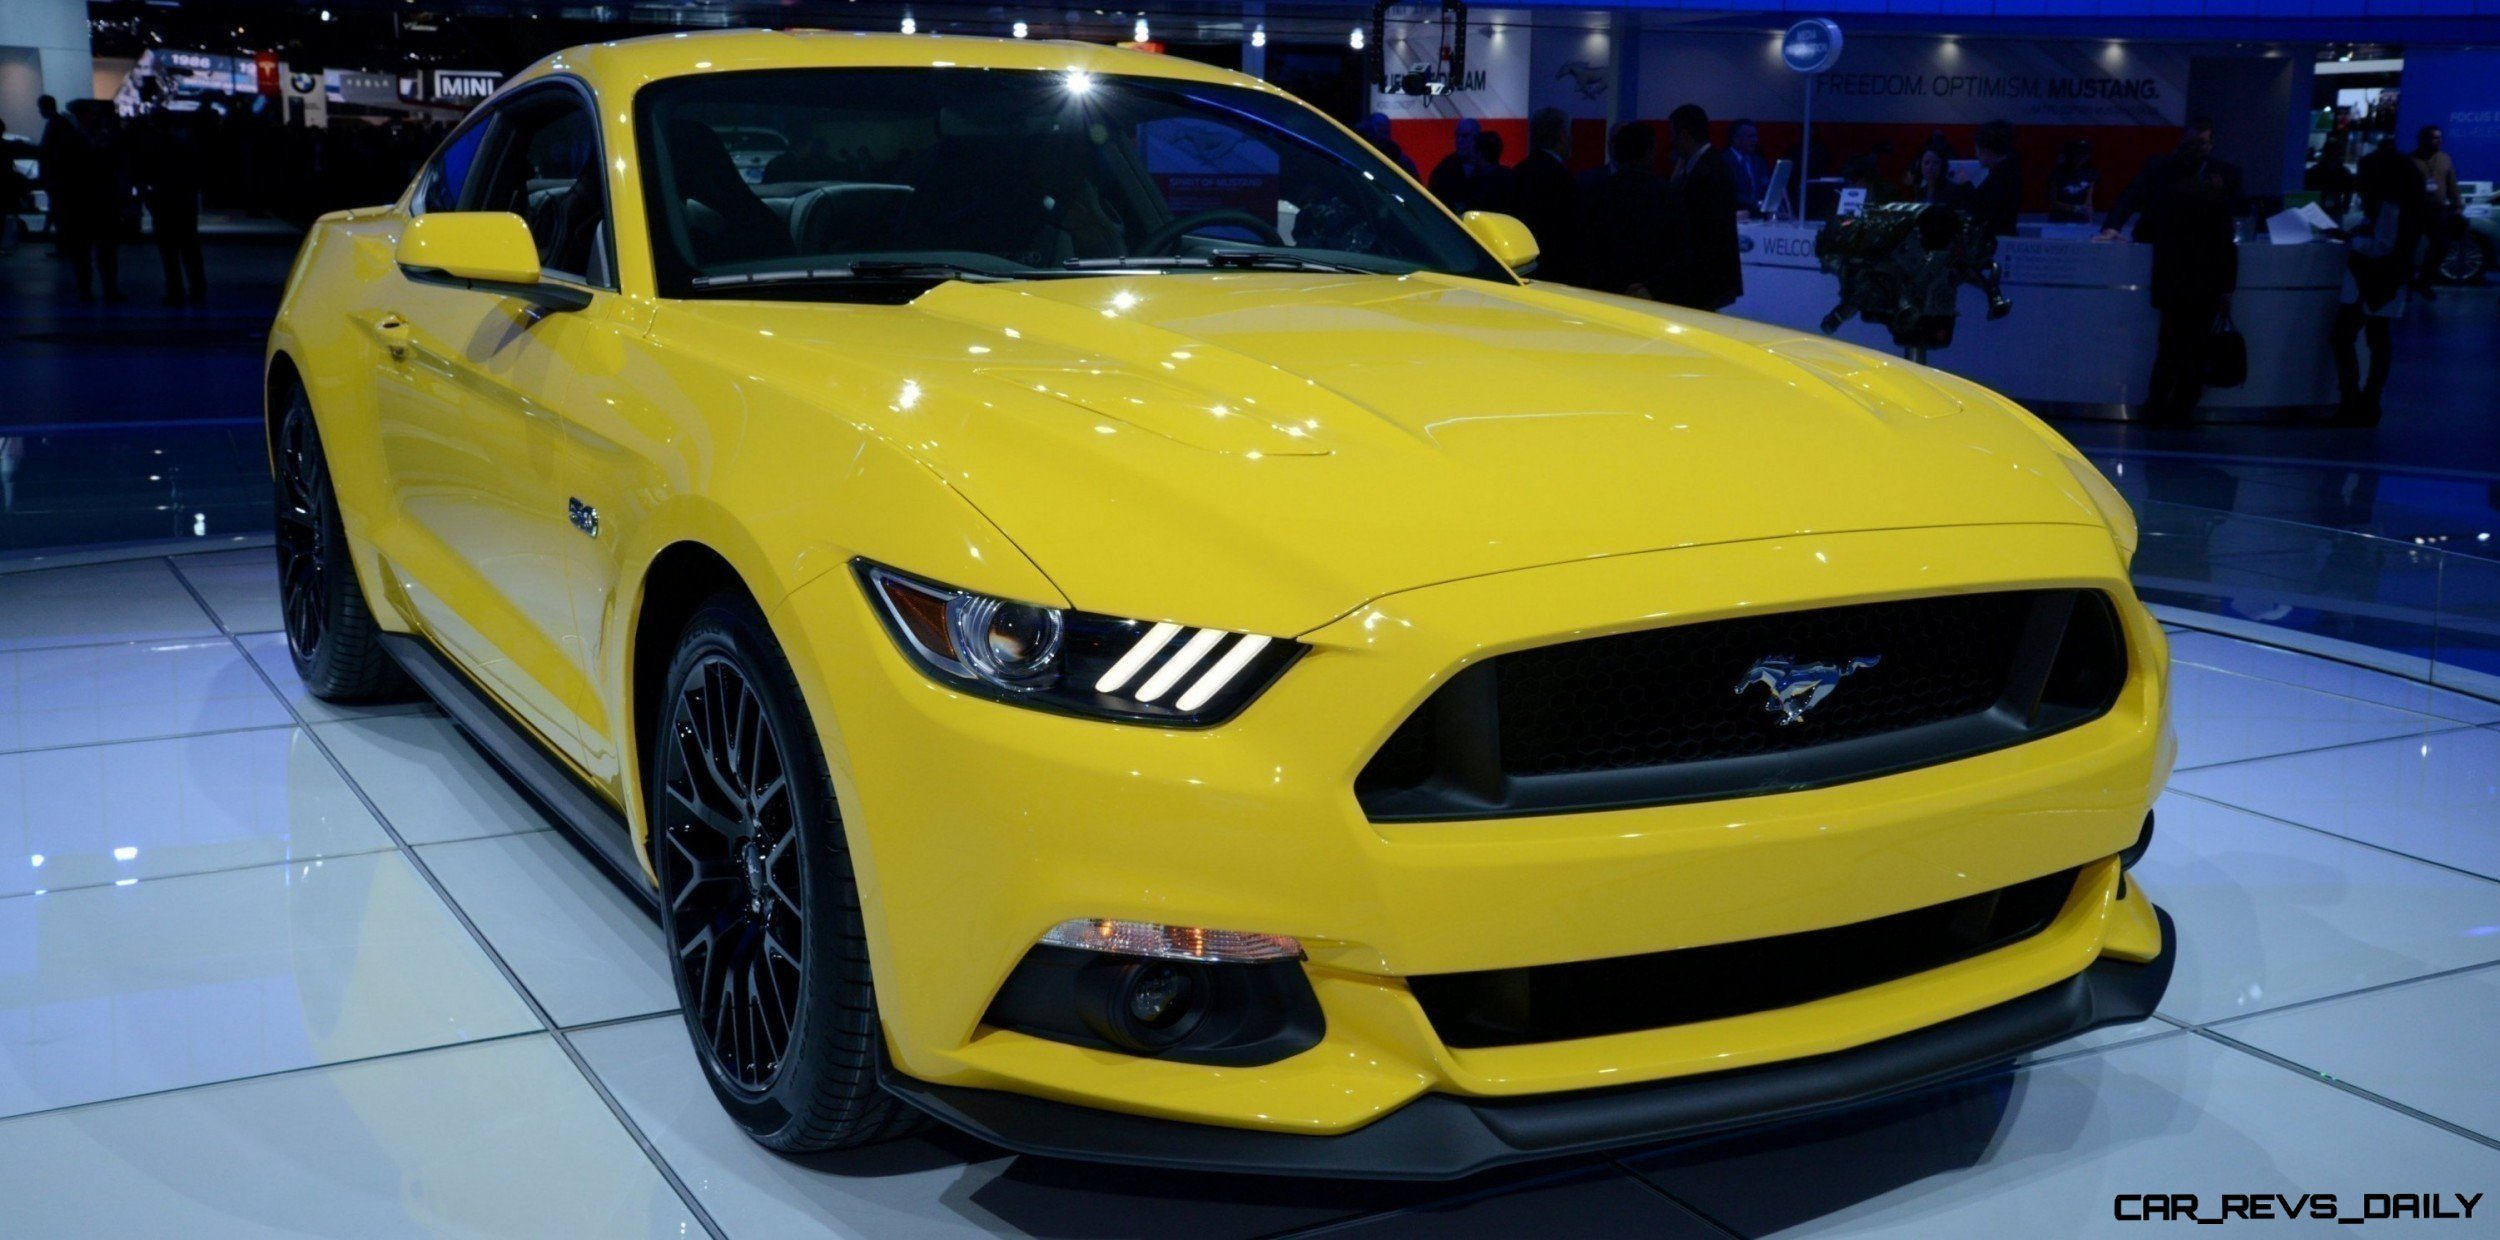 2015 Ford Mustang GT Mean Lean and Ready To Brawl in Latest Real Life Photos Yellow GT 19 photo